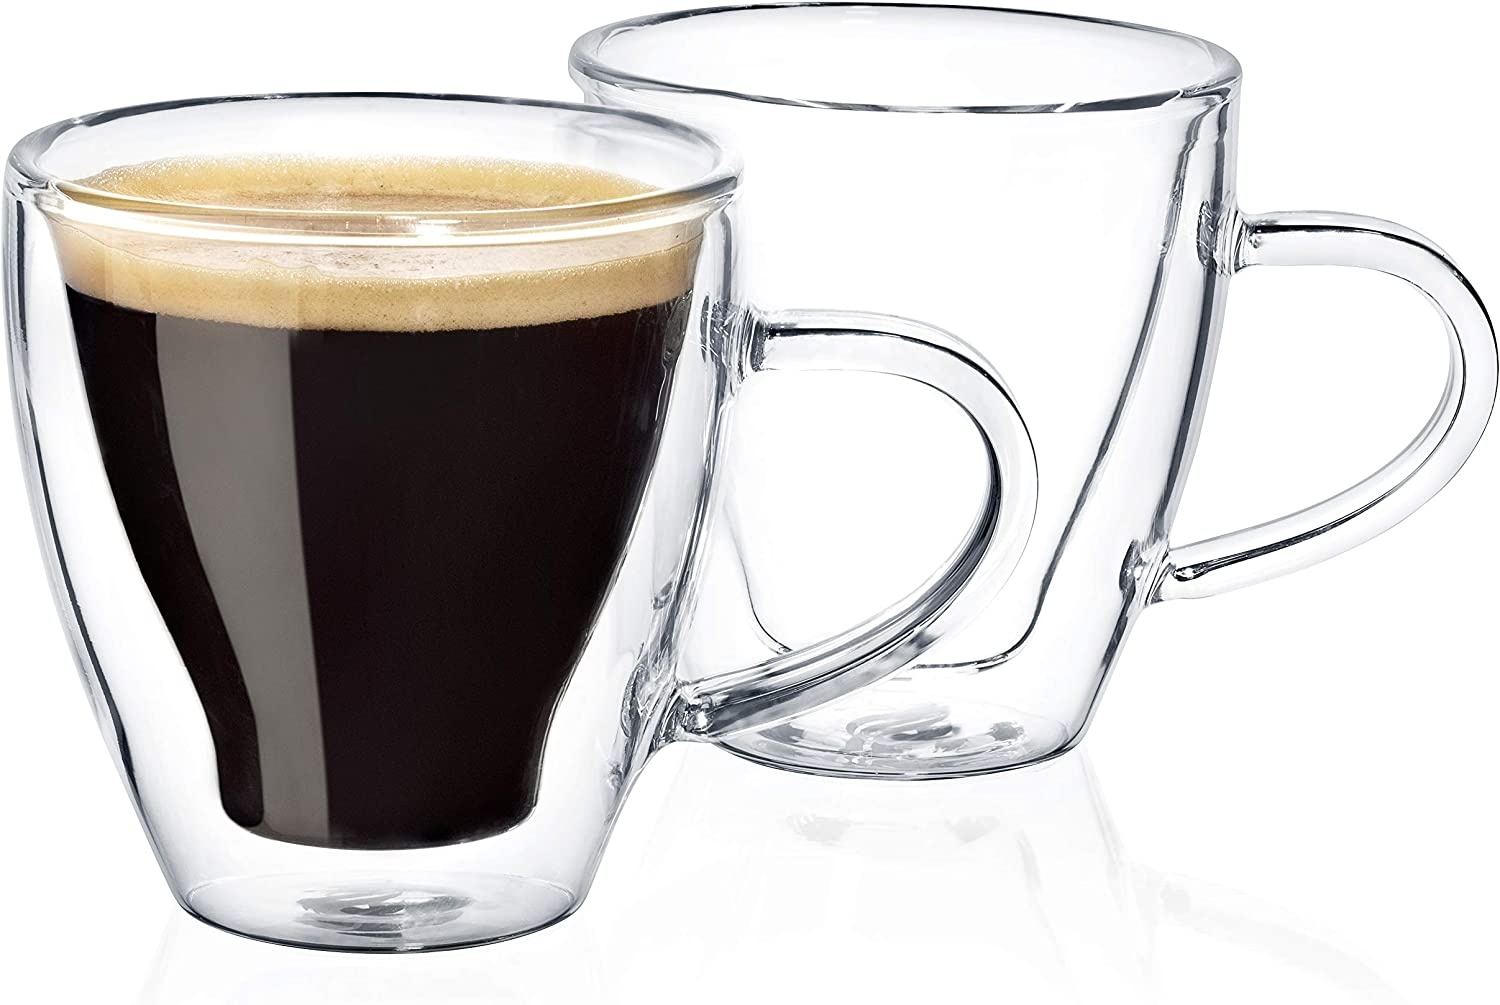 Dragon Glassware Espresso Cups, Insulating Double Walled Glass, 4-Ounce, Set of 2